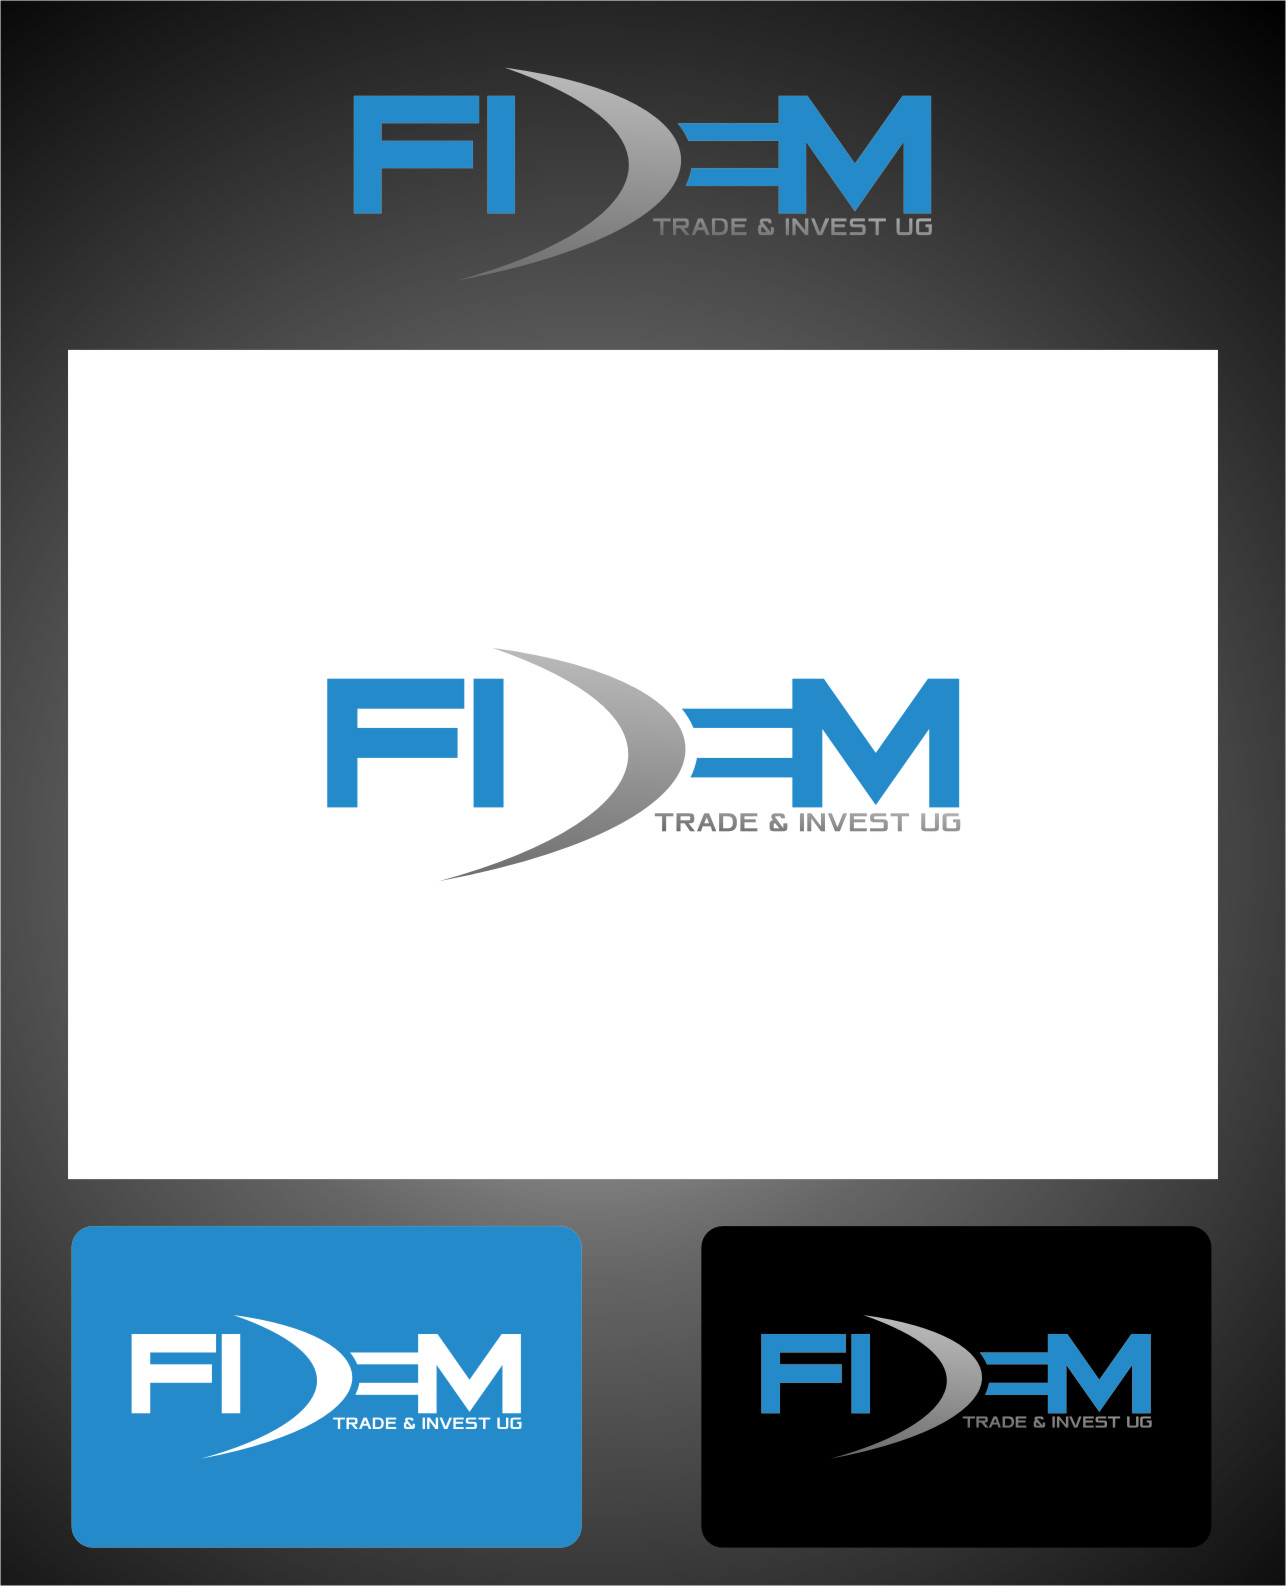 Logo Design by Ngepet_art - Entry No. 530 in the Logo Design Contest Professional Logo Design for FIDEM Trade & Invest UG.